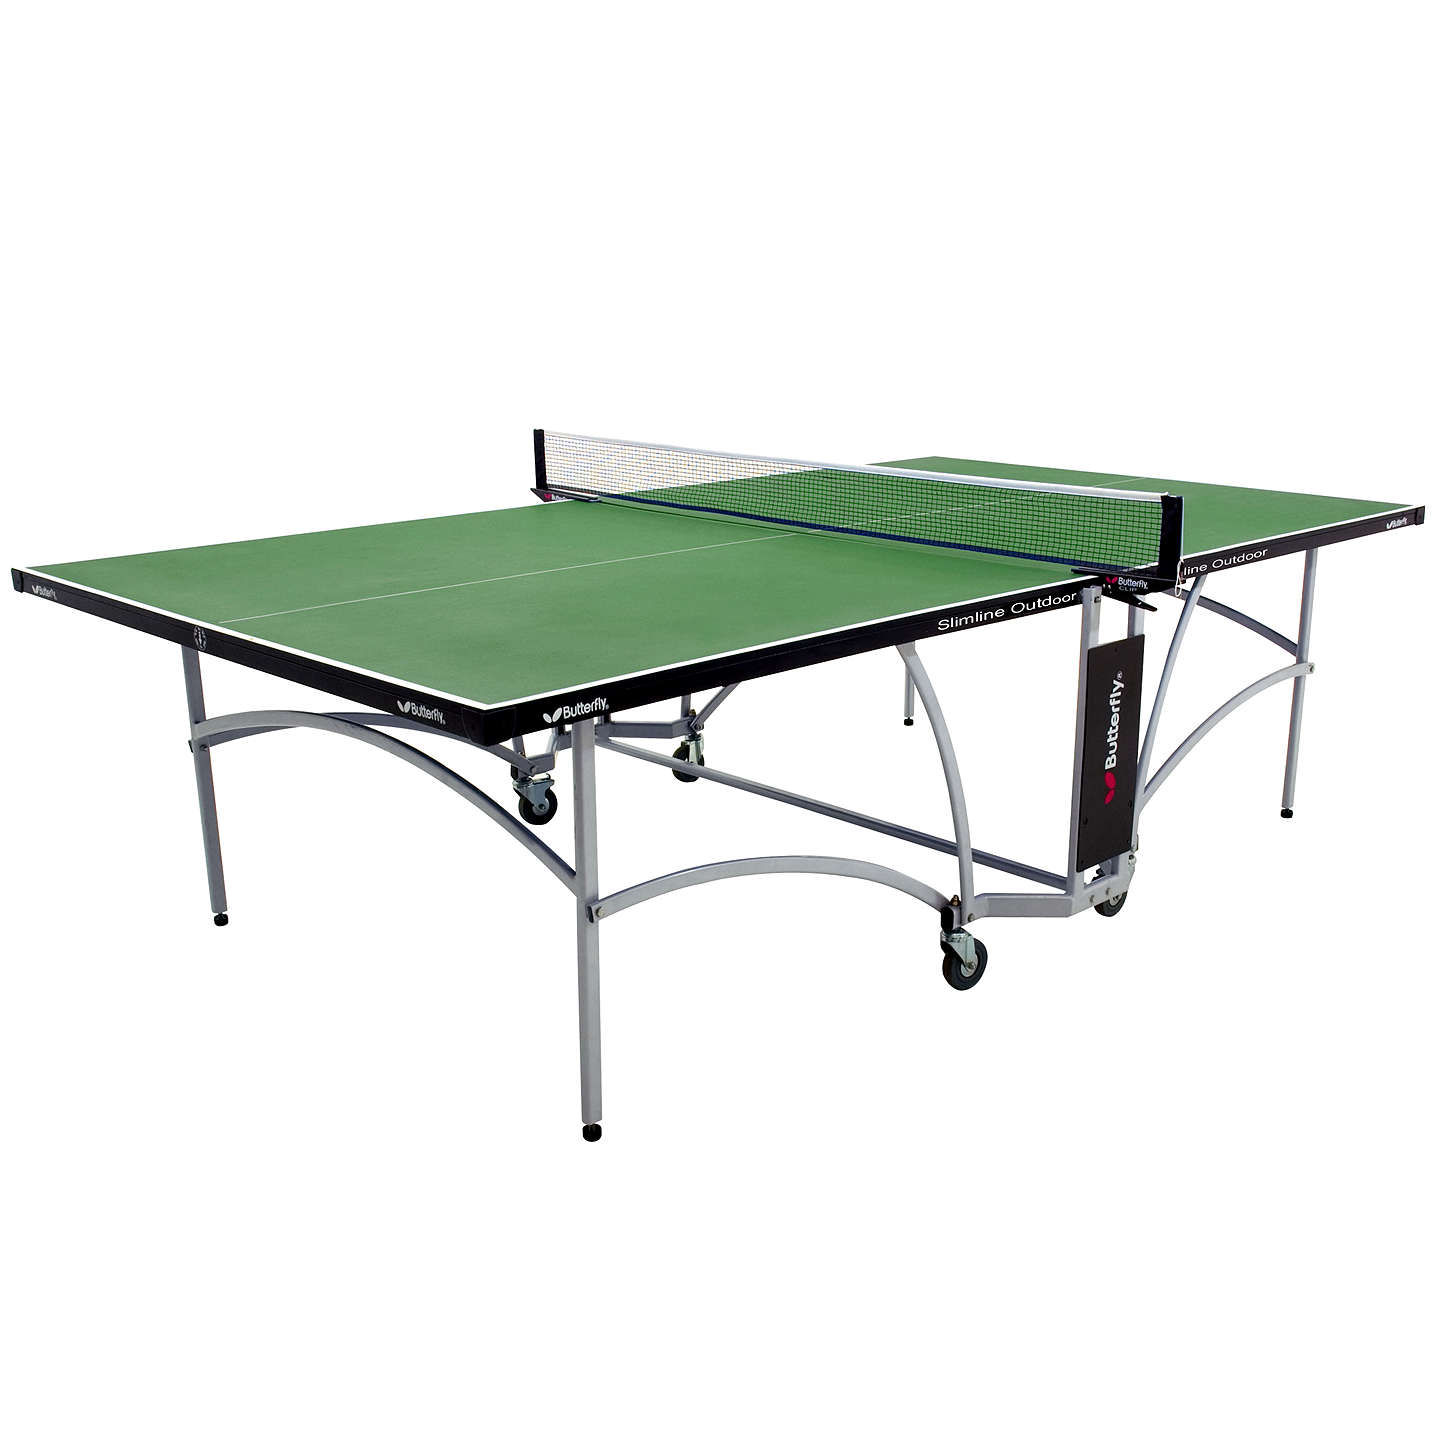 Butterfly slimline outdoor table tennis table green at john lewis - Weatherproof table tennis table ...